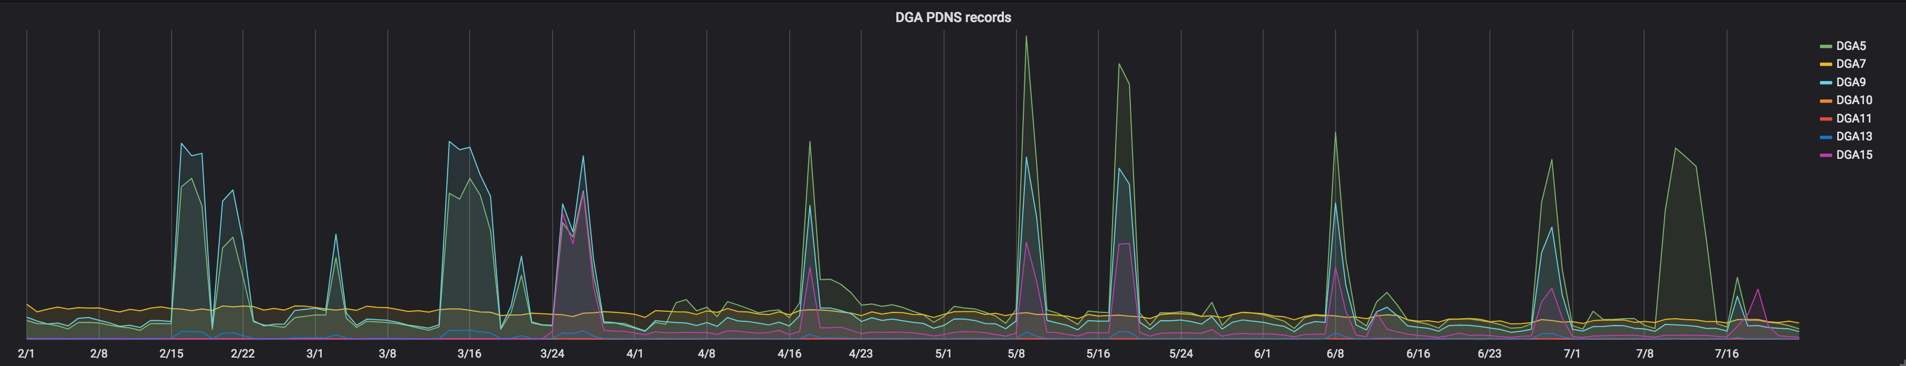 Picture5_DGA PDNS Records.png